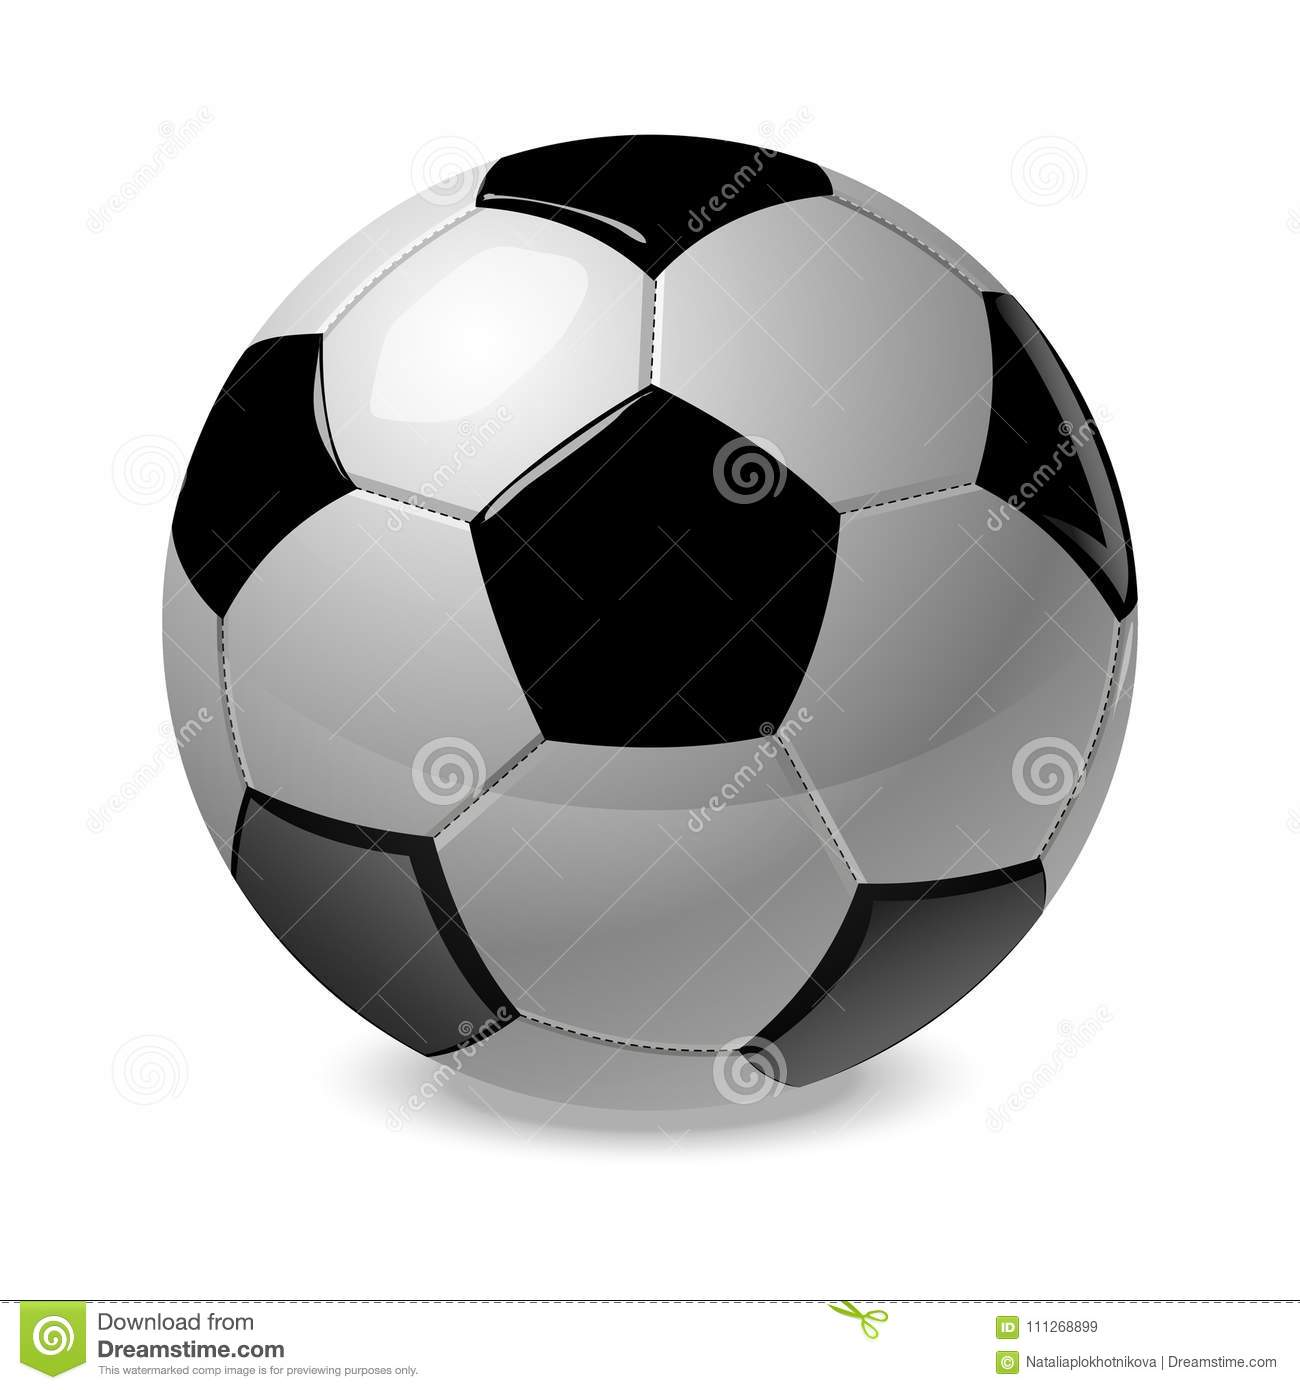 Soccer ball. Vector. Sport. Object.